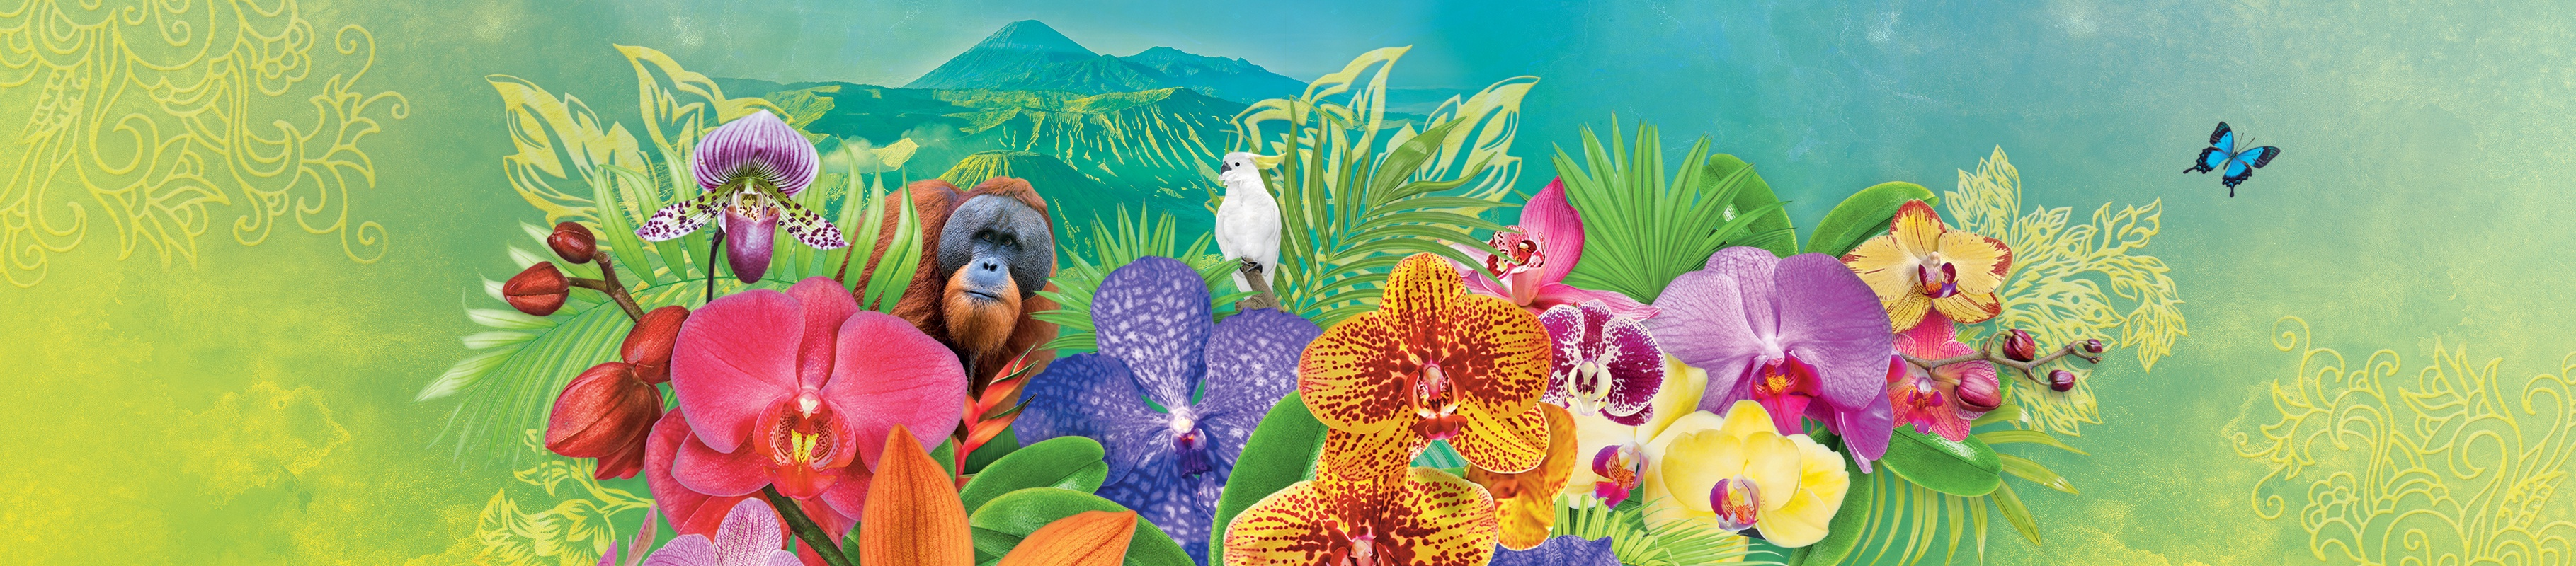 A colourful illustration featuring Indonesia orchids, orangutans, volcanos and other flora.